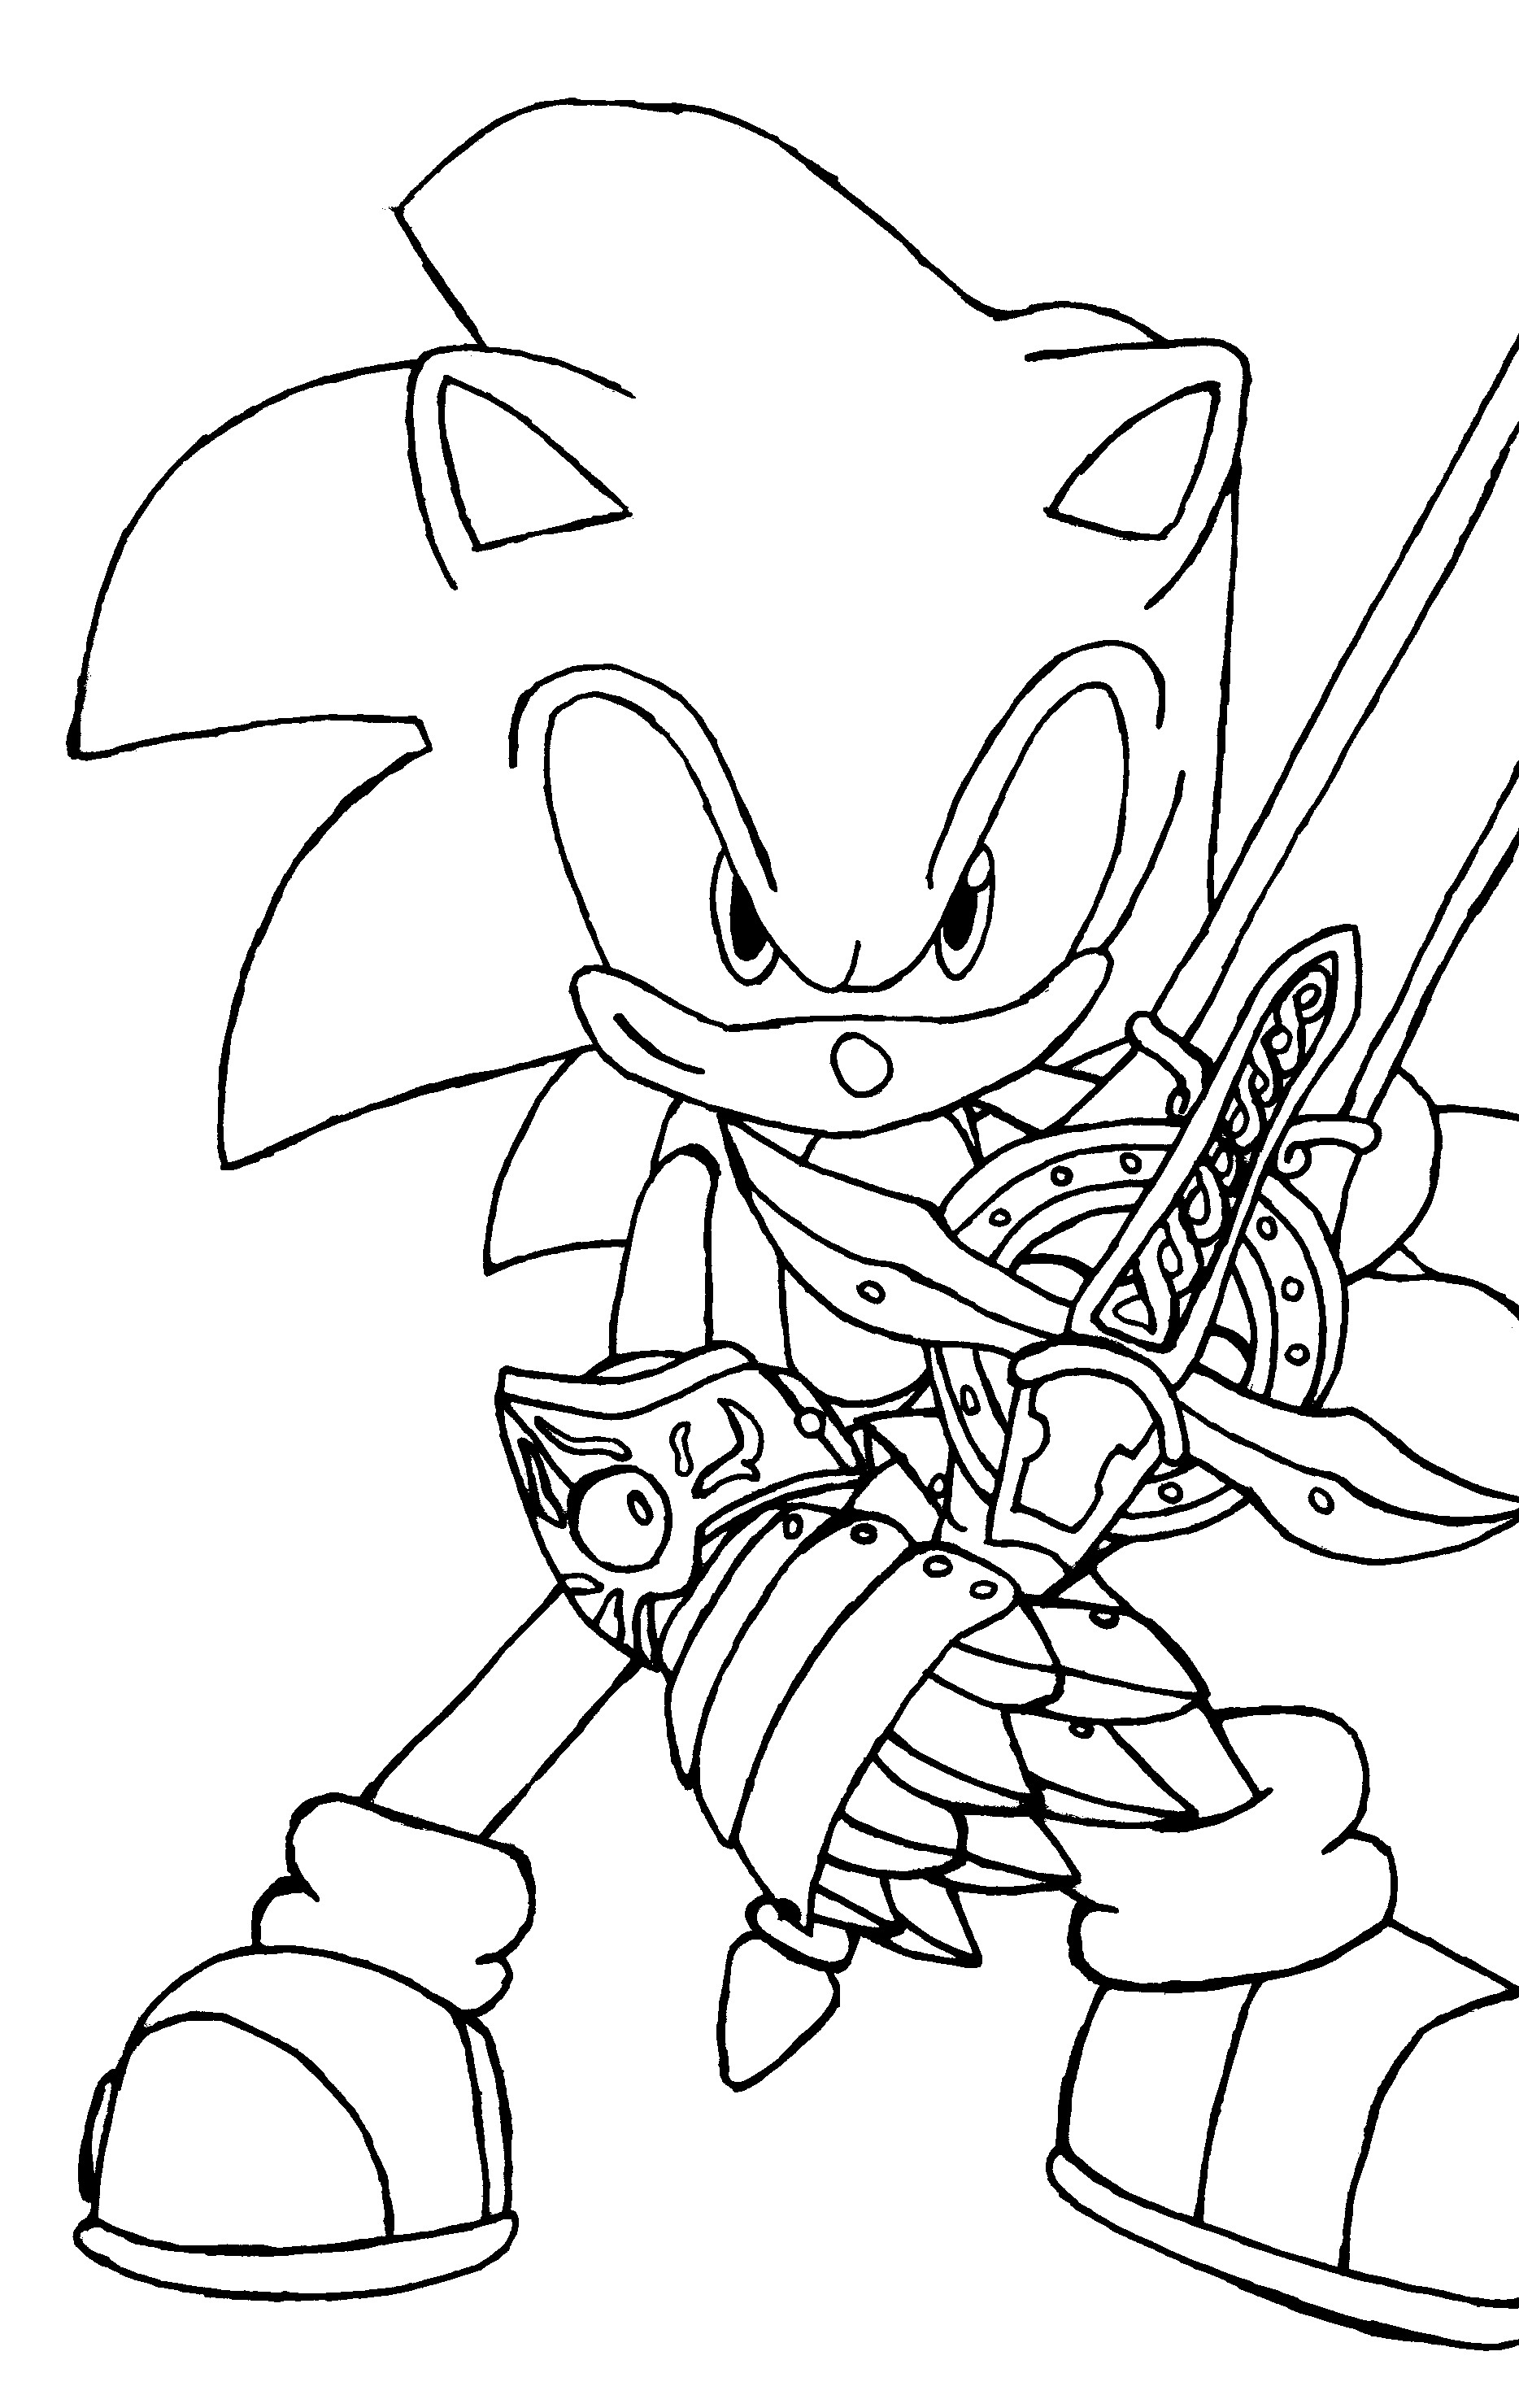 coloring pages onlinw - photo#17